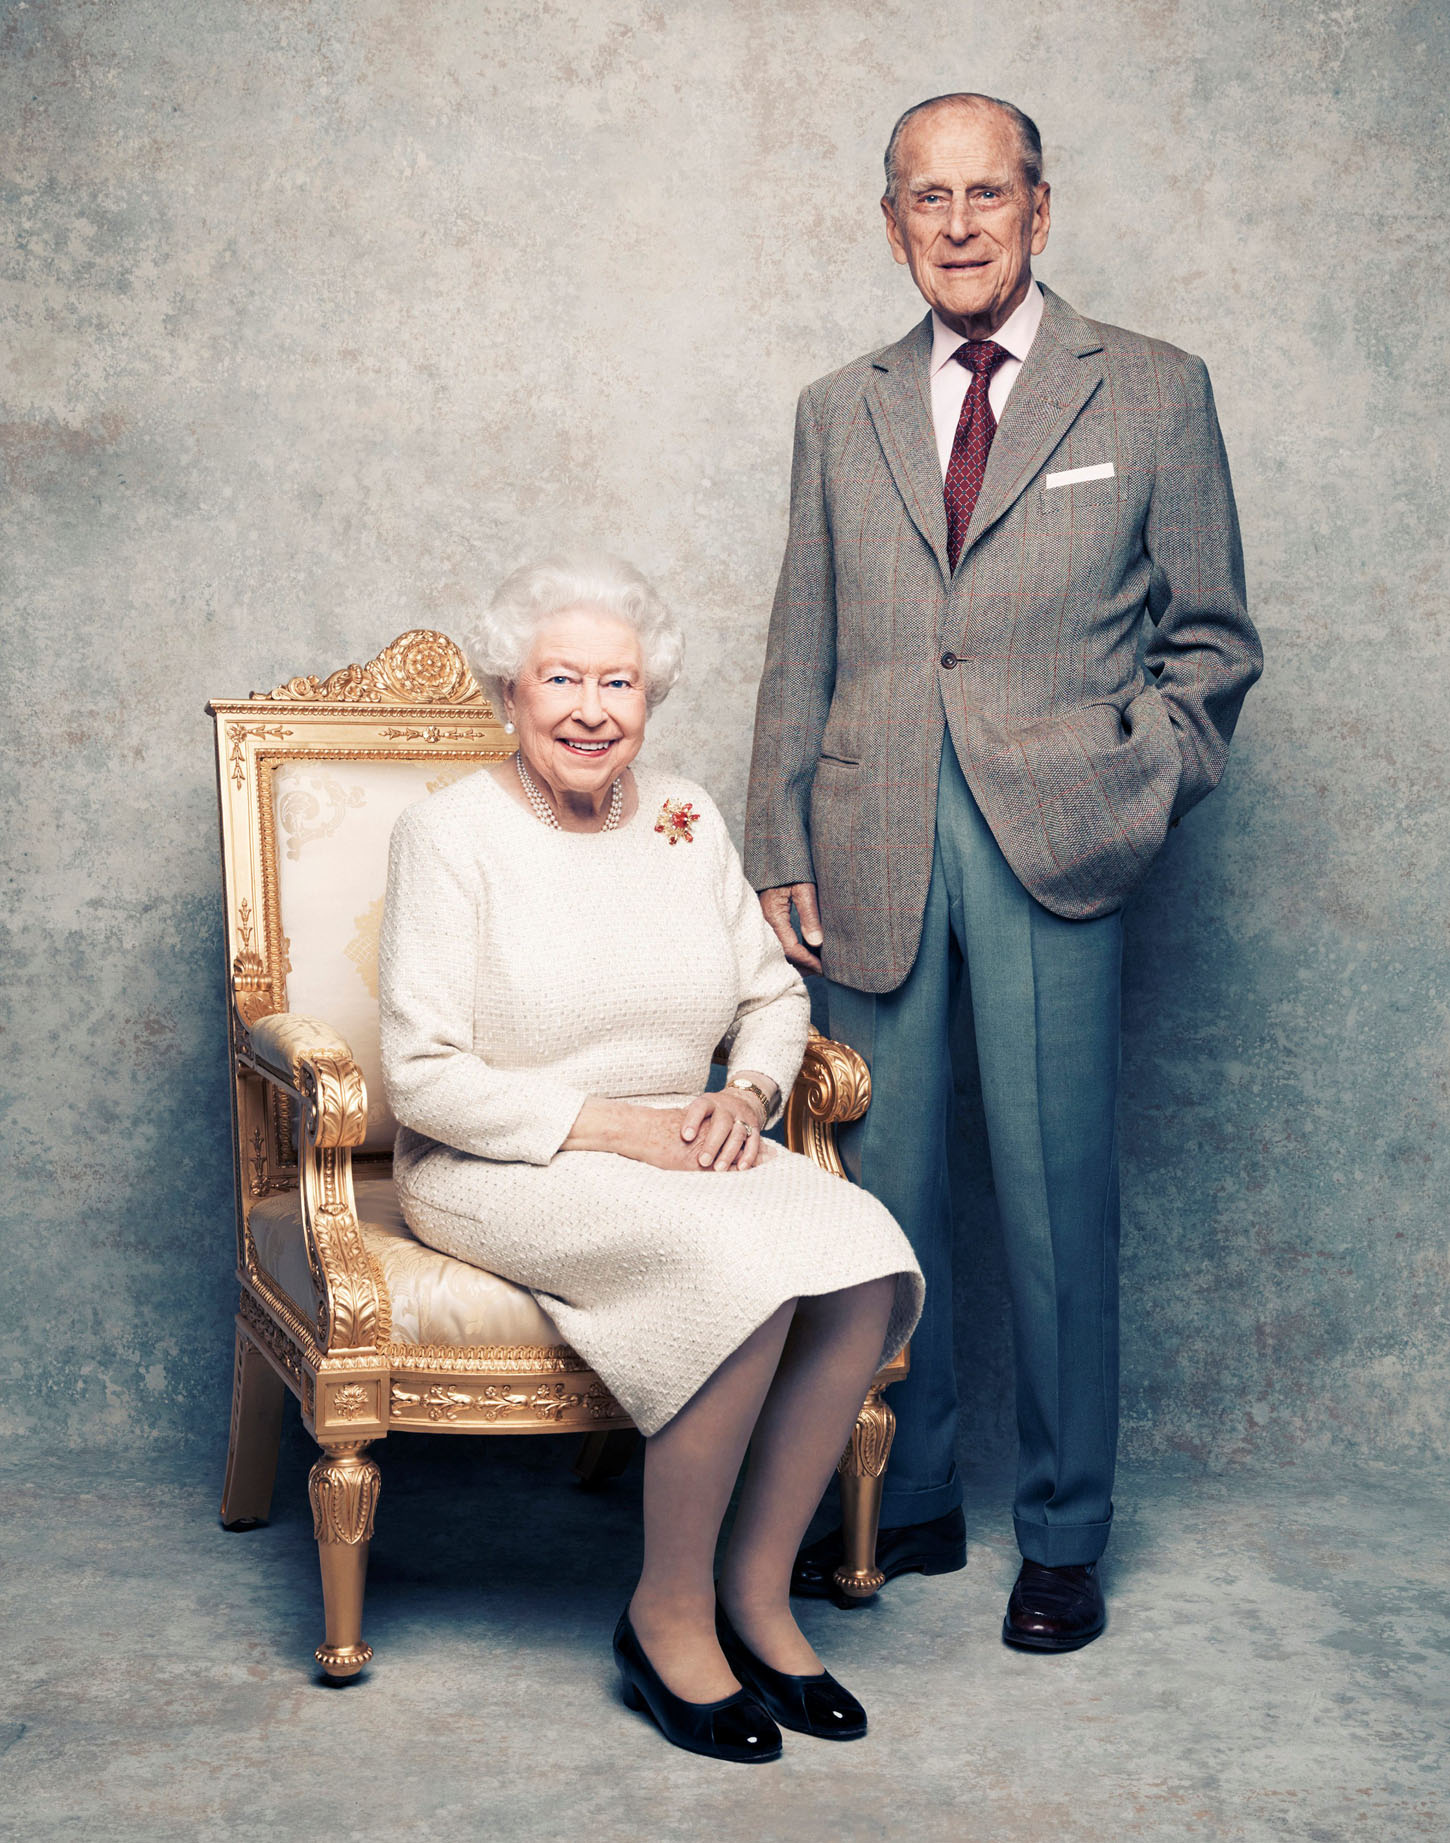 A handout photo shows Britain's Queen Elizabeth and Prince Philip in the White Drawing Room at Windsor Castle in early November, pictured against a platinum-textured backdrop, in celebration of their platinum wedding anniversary on November 20, 2017. Matt Holyoak/CameraPress/PA Wire/Handout via REUTERS      MANDATORY CREDIT. IMAGE IS PROVIDED FOR FREE EDITORIAL USE UNTIL DECEMBER 3RD. WHEN IT MUST BE REMOVED FROM ALL SYSTEMS AND THOSE OF YOUR SUBSCRIBERS. THIS PHOTOGRAPH IS STRICTLY FOR EDITORIAL USE ONLY, NO COMMERCIAL, SOUVENIR, COVERS OR PROMOTIONAL USE PERMITTED. THE PHOTOGRAPH CANNOT BE CROPPED, MANIPULATED OR ALTERED IN ANY WAY. THIS PICTURE WAS PROVIDED BY A THIRD PARTY. NO RESALES. NO ARCHIVE.